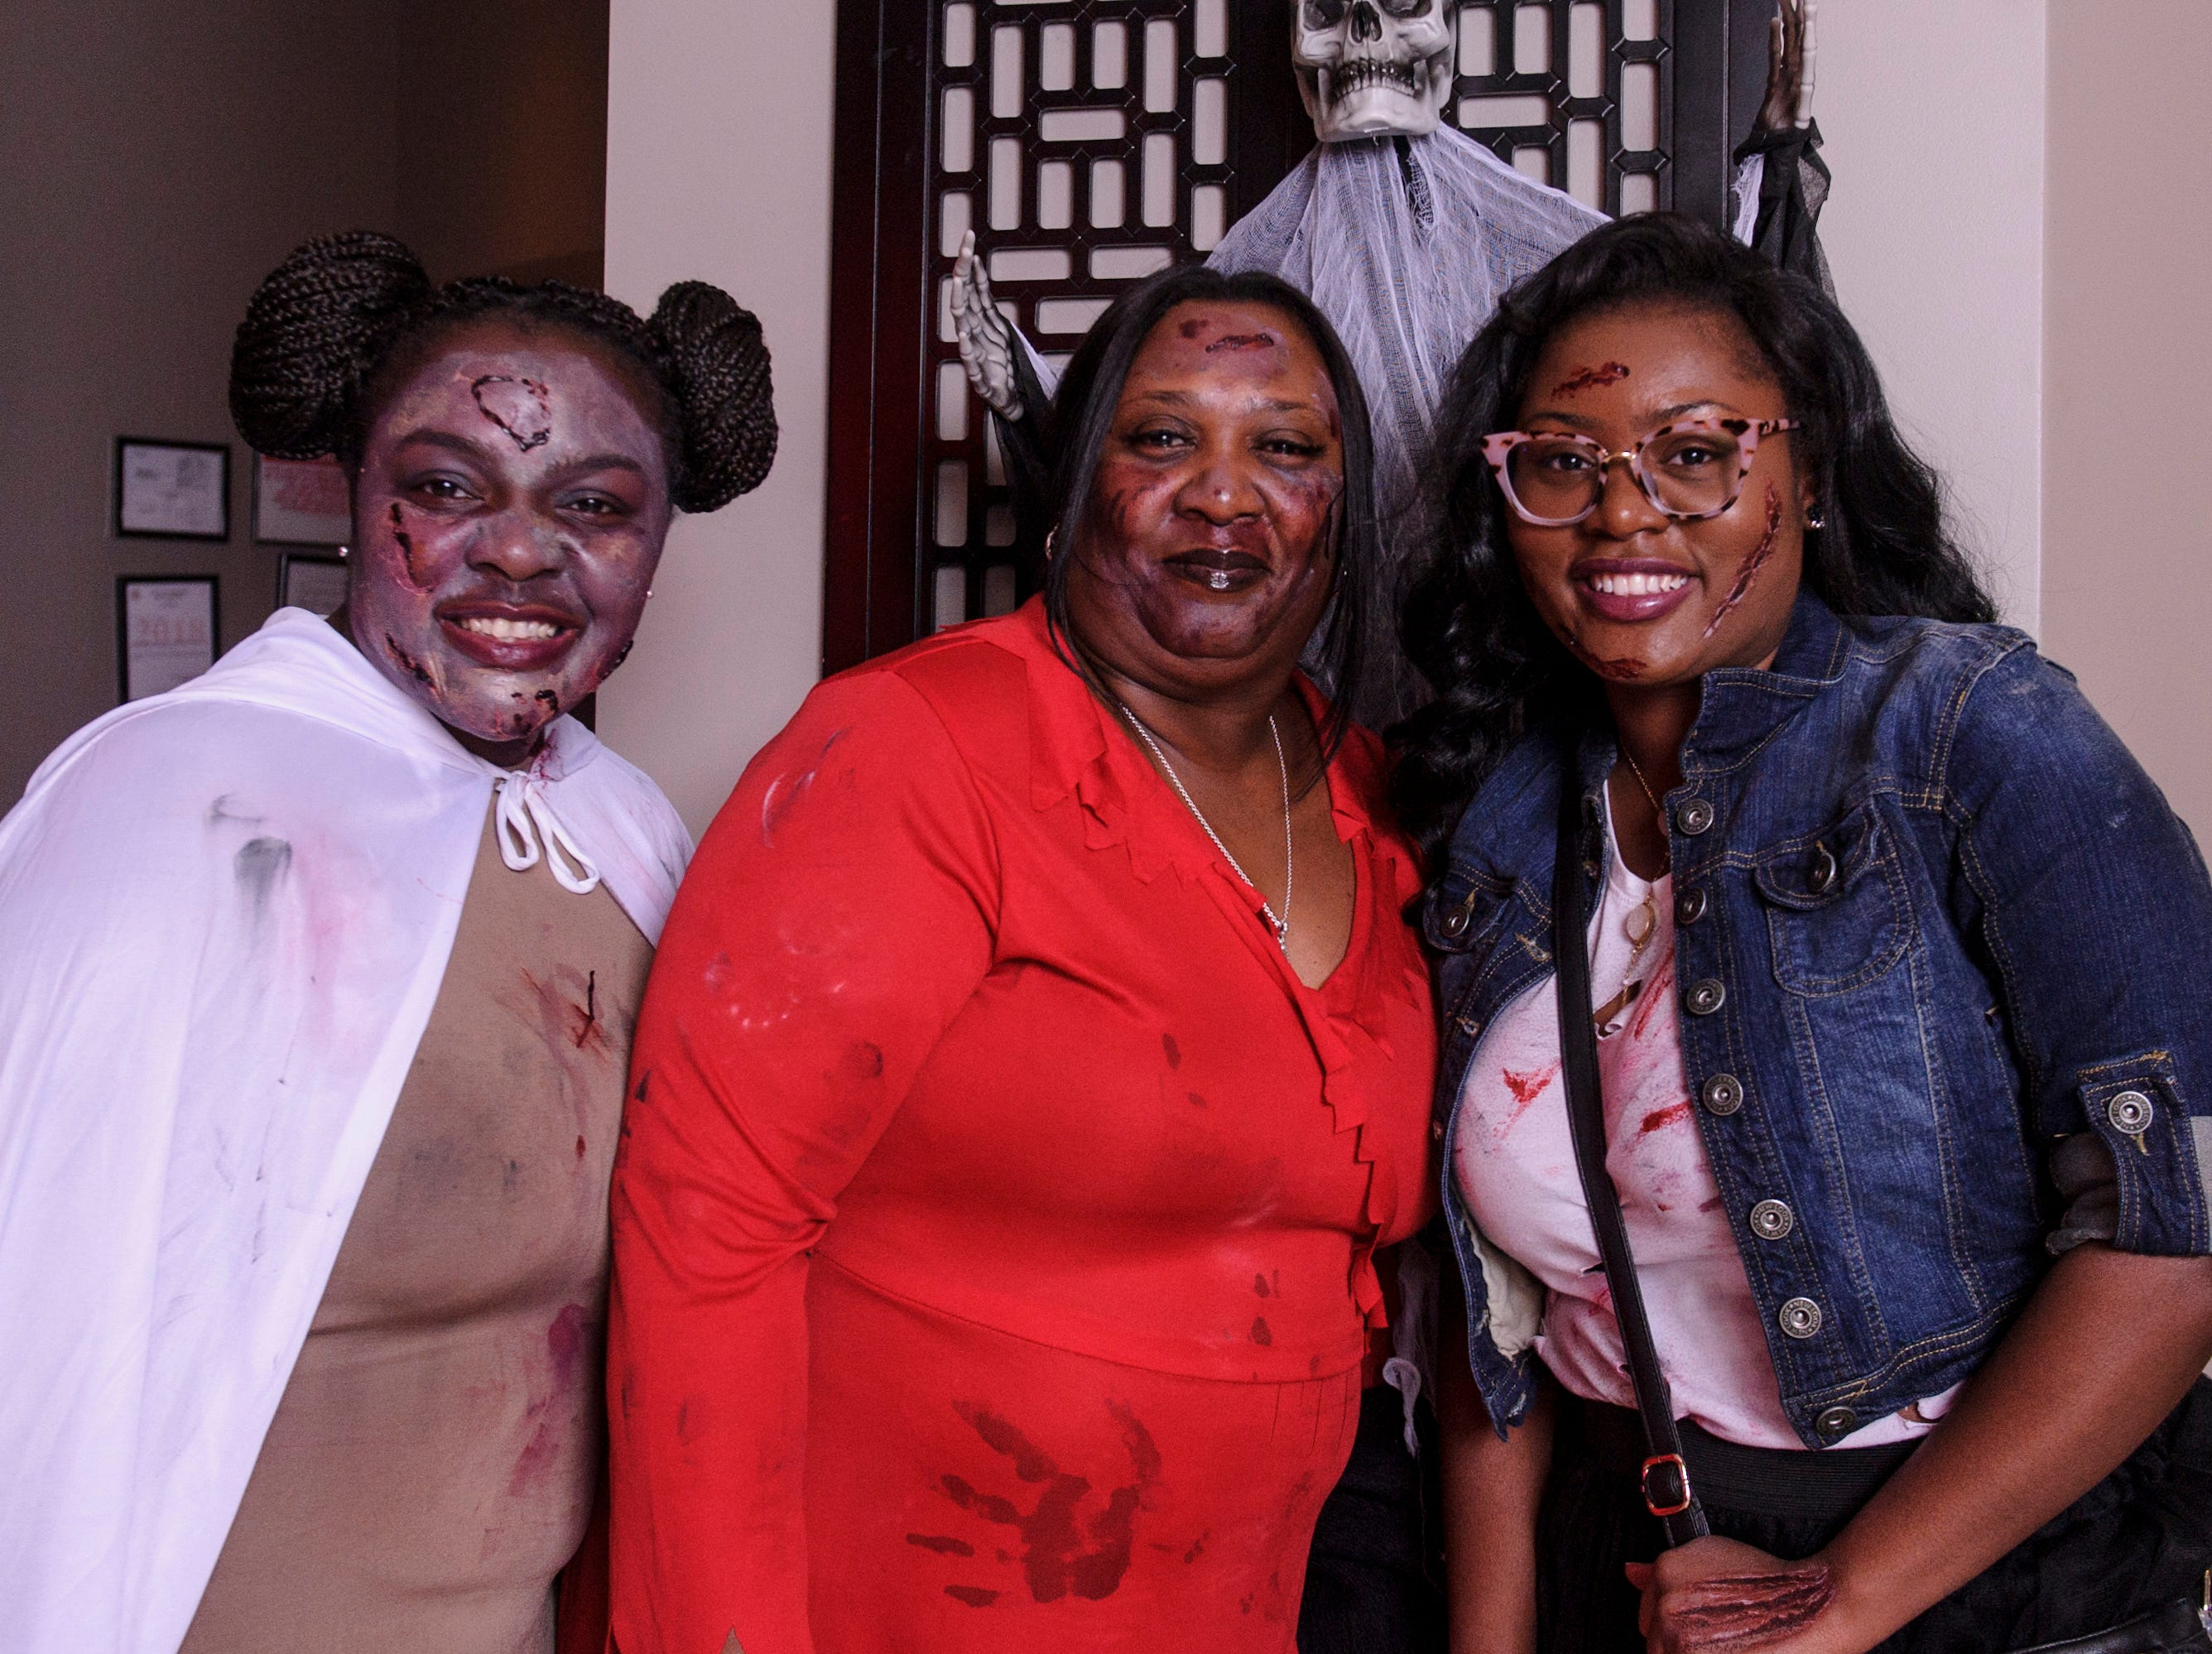 Dezanna Moore, Denozanna Moore, and Victavia Moore at the Zombie Prom on Saturday, Oct. 20, 2018.